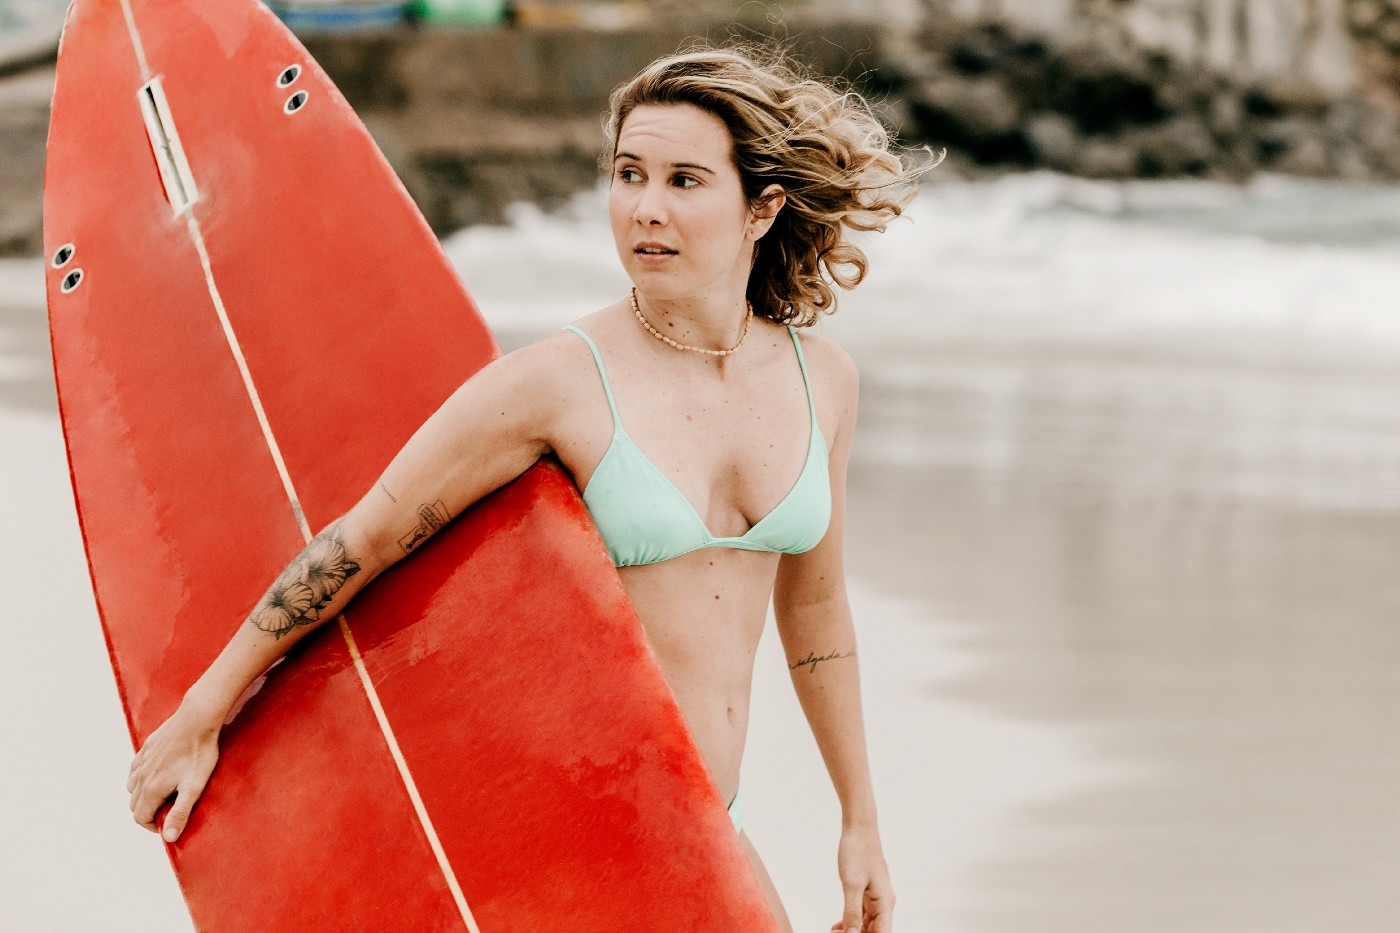 Girl holding a surfboard and wearing a bikini, looking nervous.